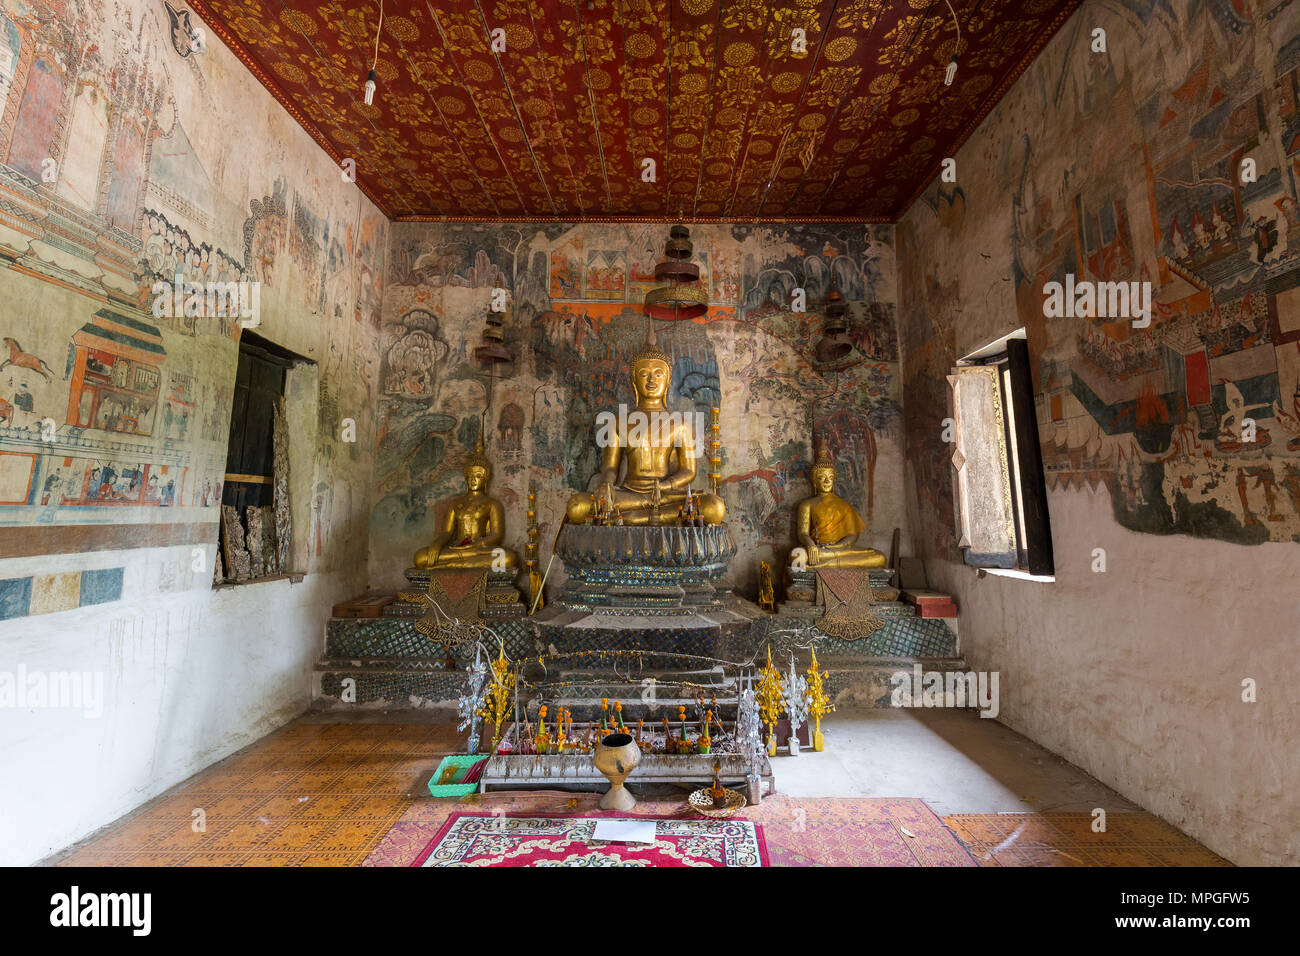 Murals, altar and Buddha statues inside of Wat Pa Huak temple in Luang Prabang, Laos. - Stock Image